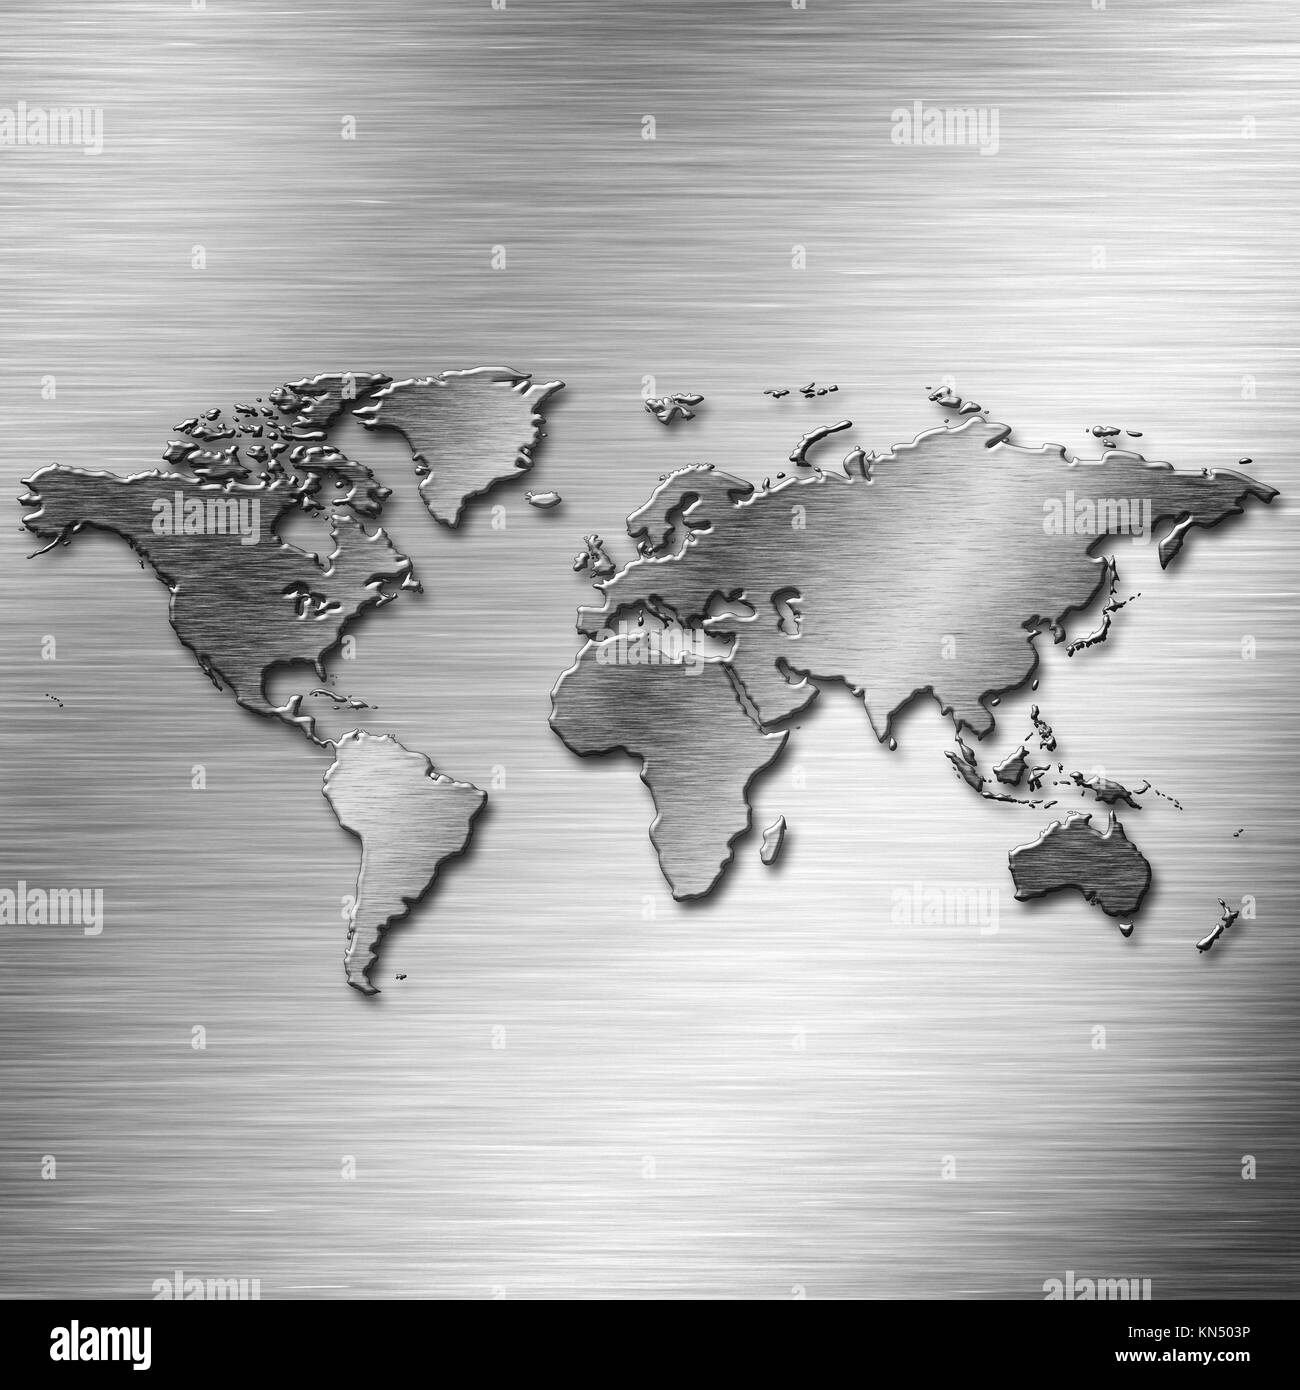 Steel Earth map over old aluminium desk as industrial backgrounds. - Stock Image